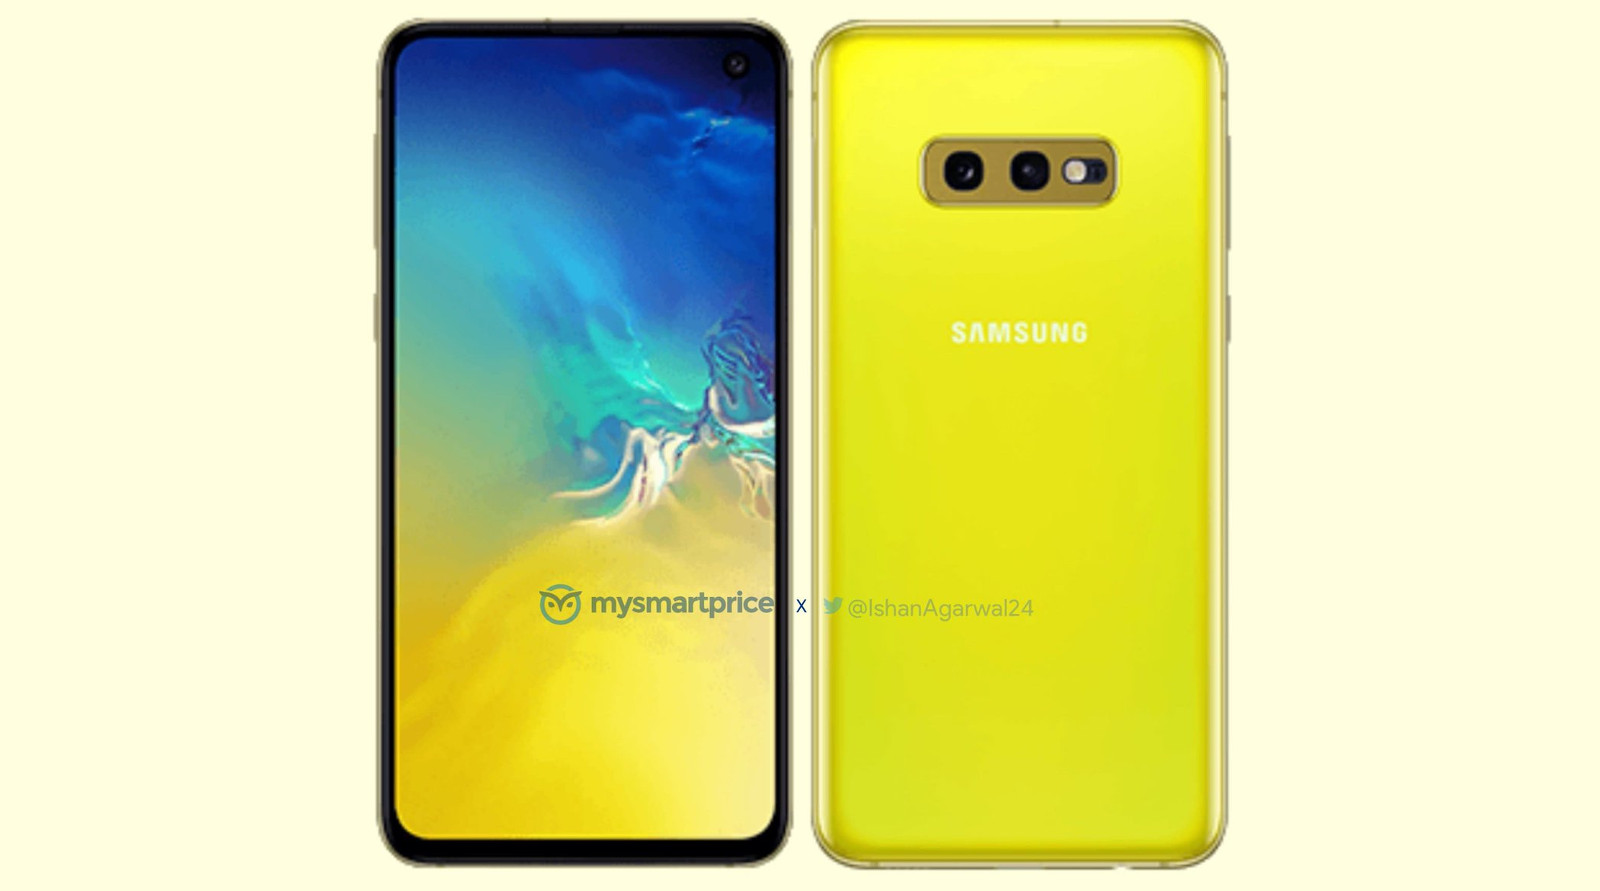 Samsung Galaxy S10e revealed in a new colour variant. Yay